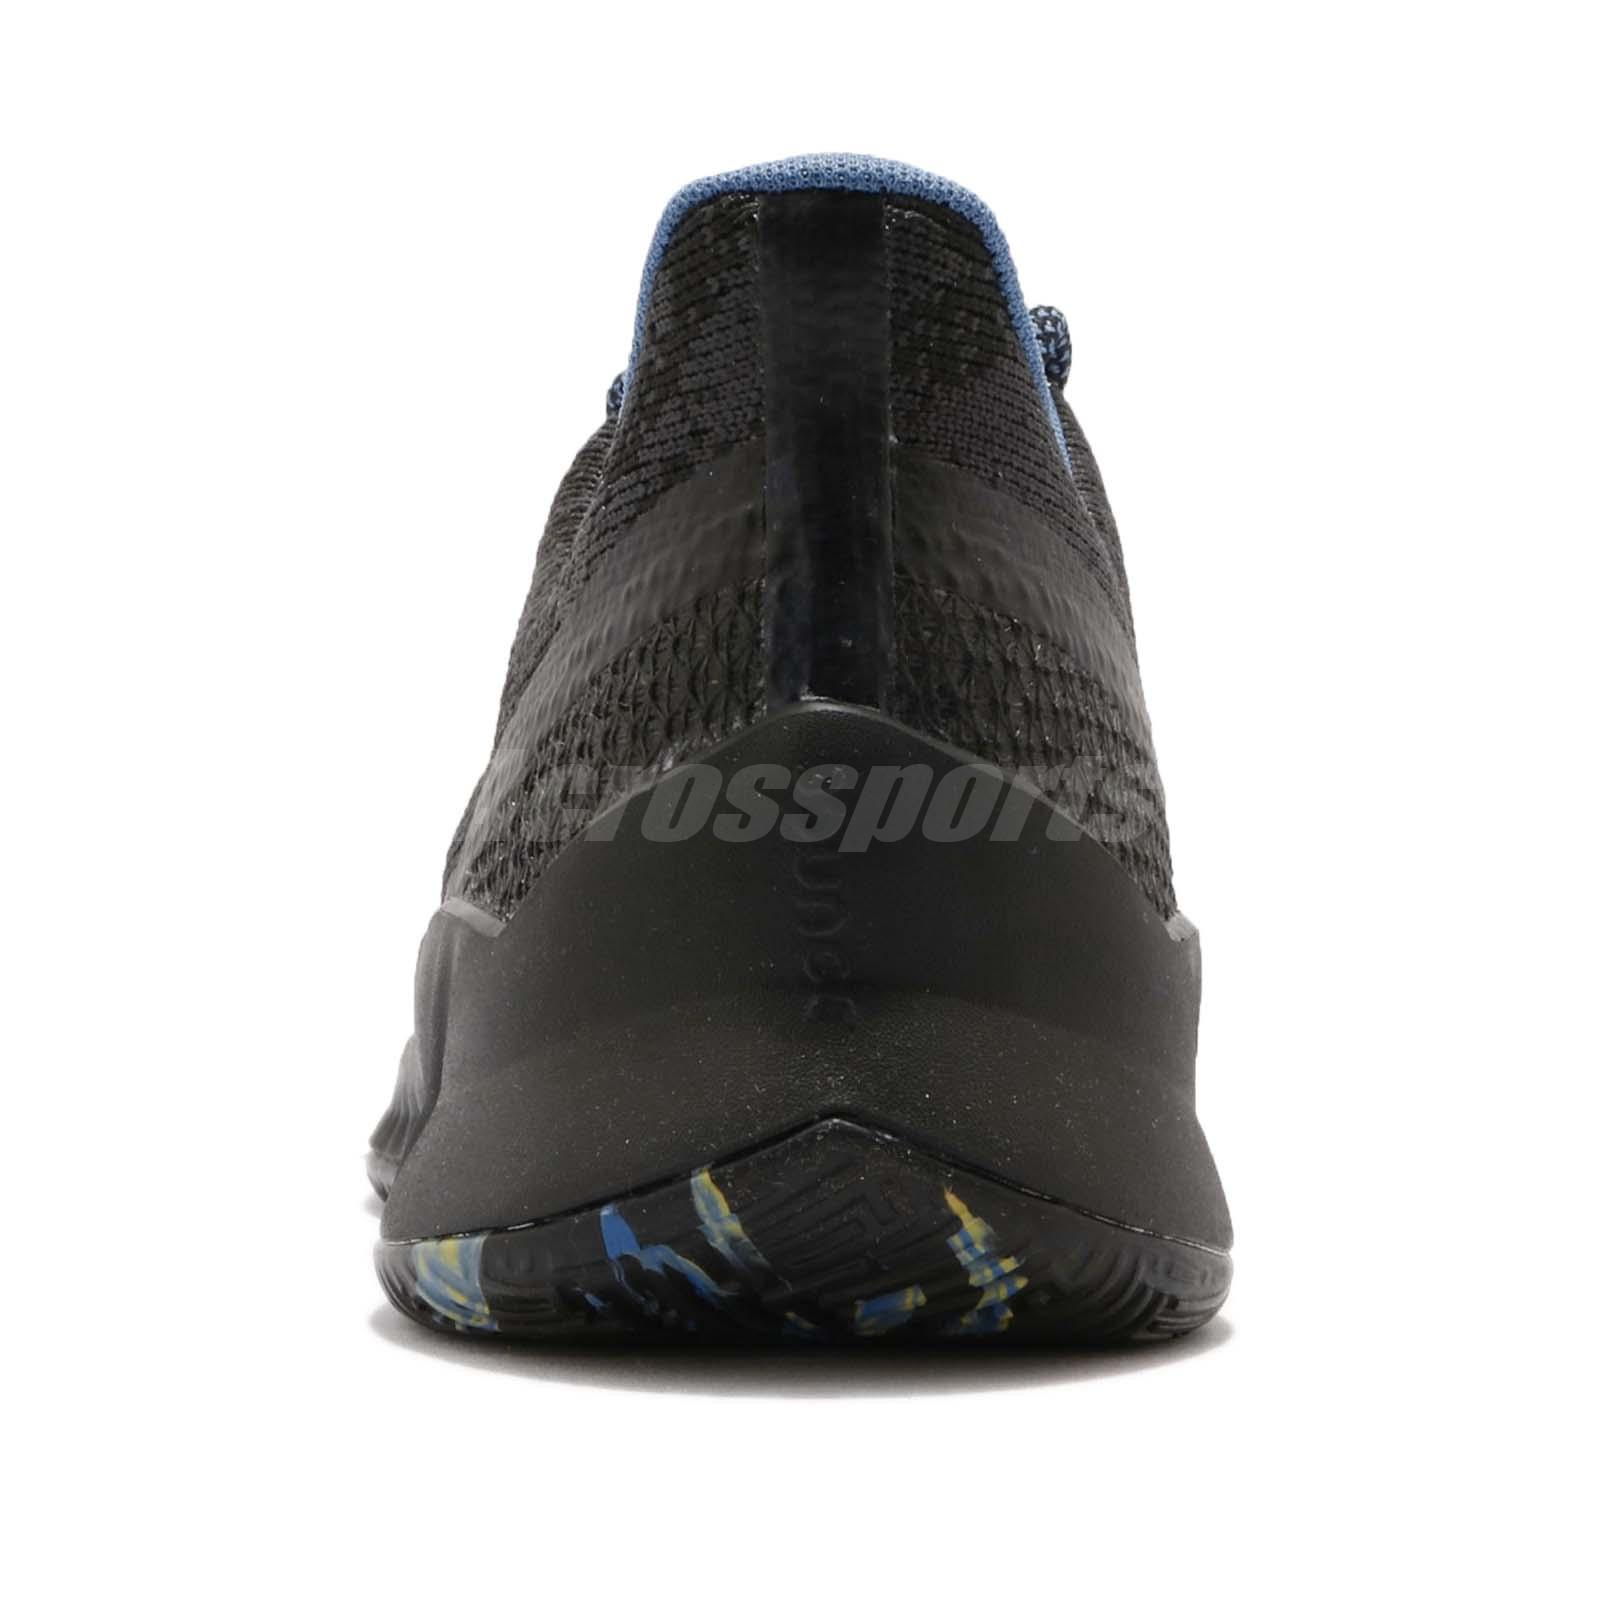 533ba0bee885 adidas Harden B E X MVP James Black Gold Men Basketball Shoes ...